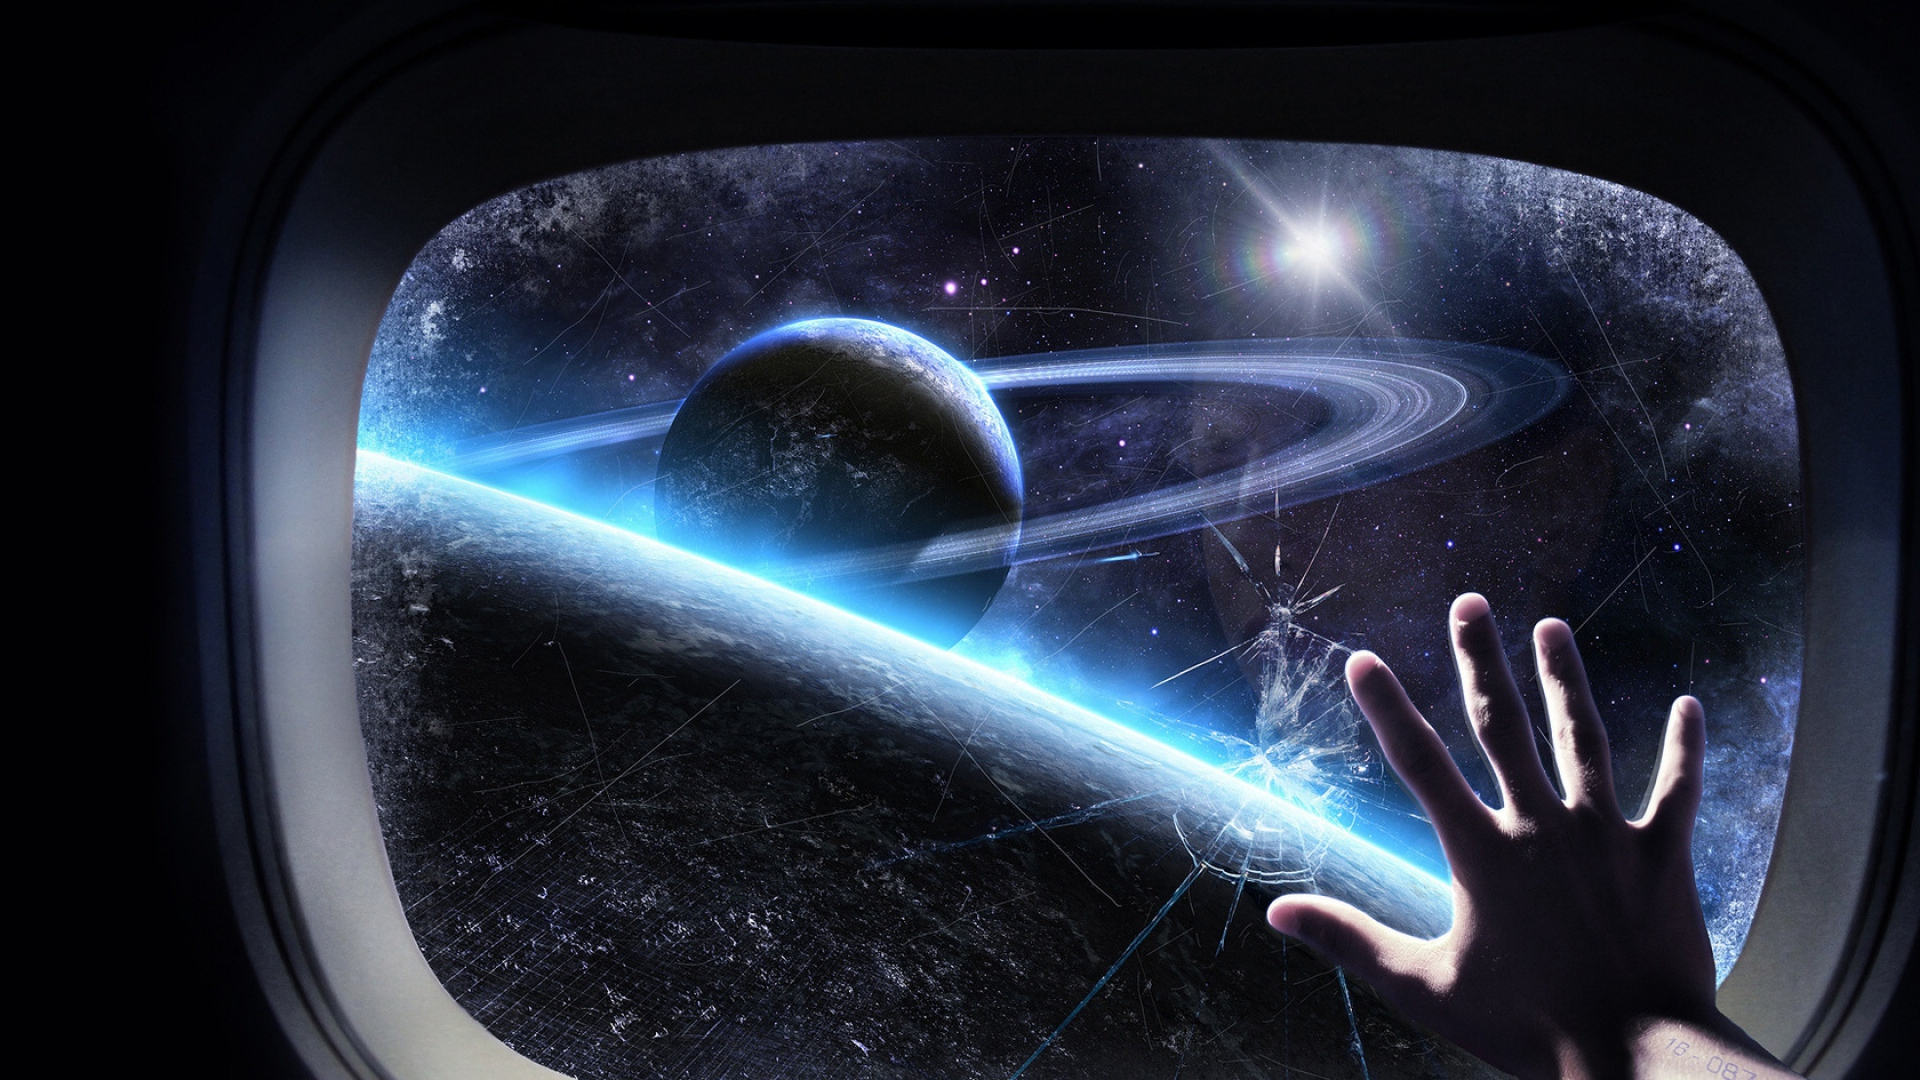 Download Wallpaper 1920x1080 Glass Craft Hand Space Planet Orbit Full HD 1080p Background